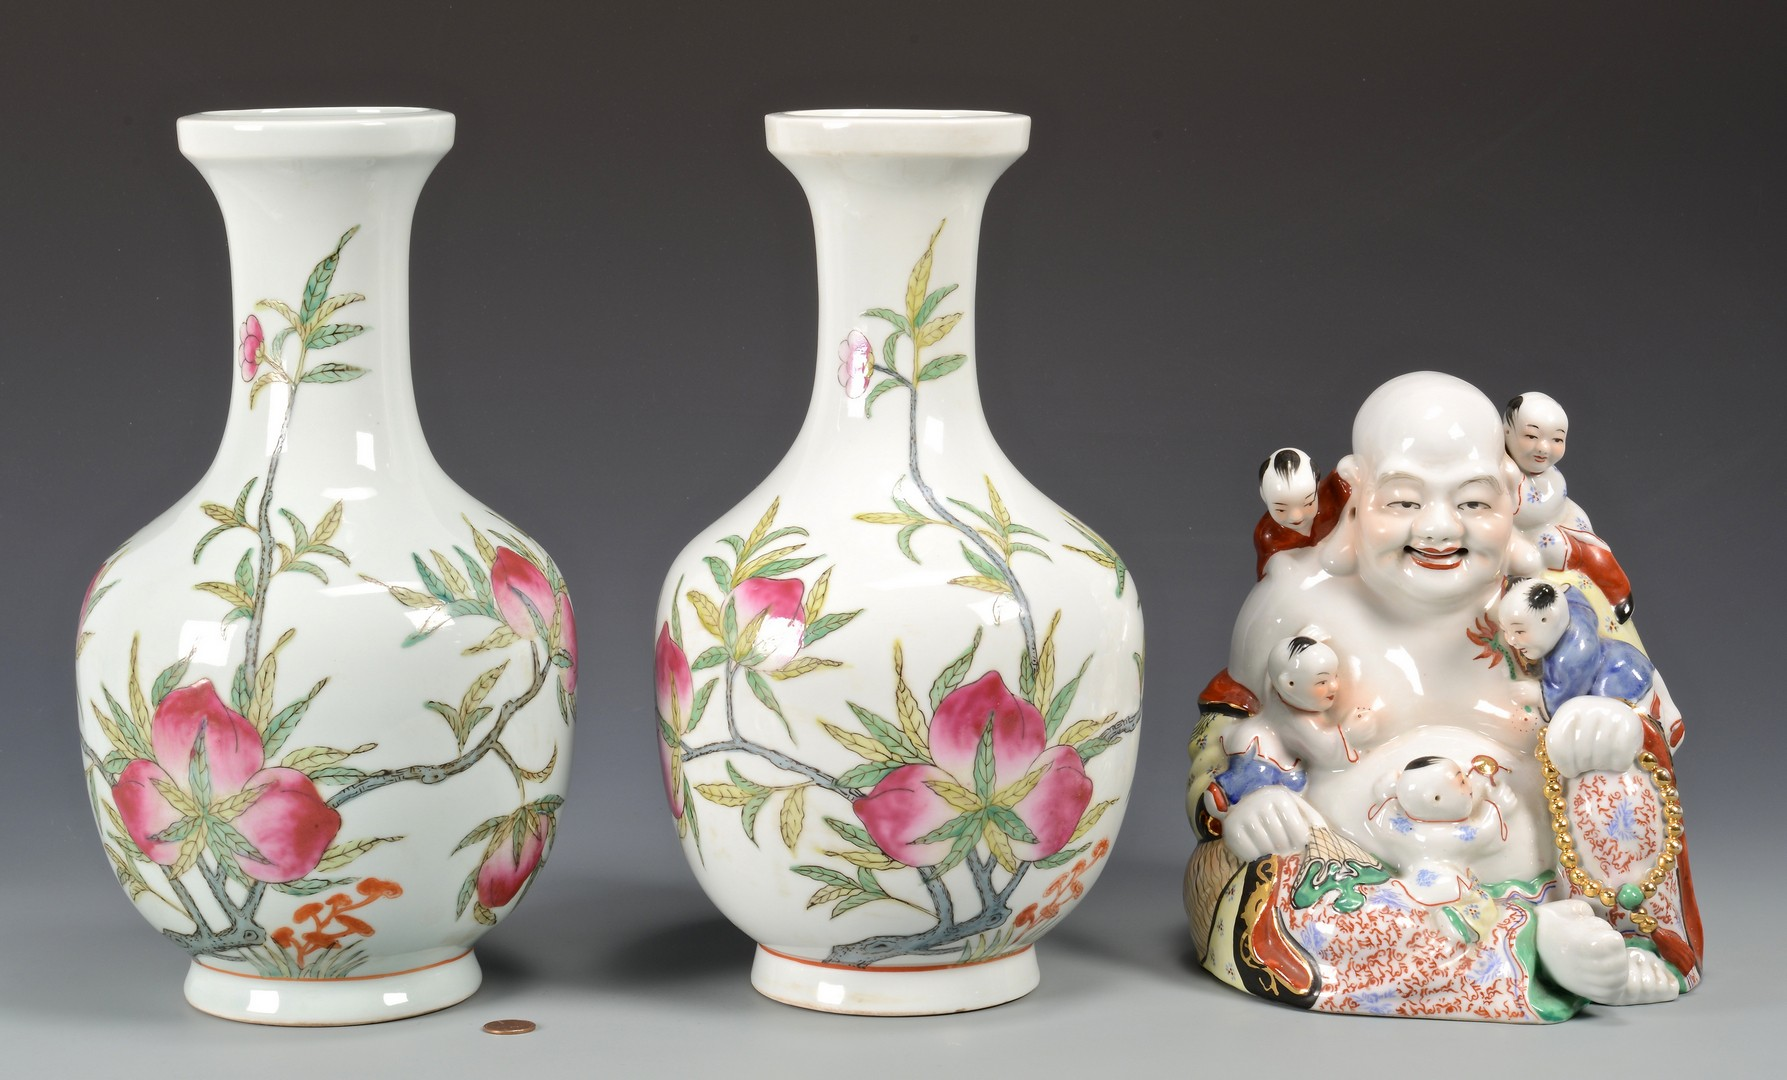 Lot 711: 3 Articles of Chinese Porcelain